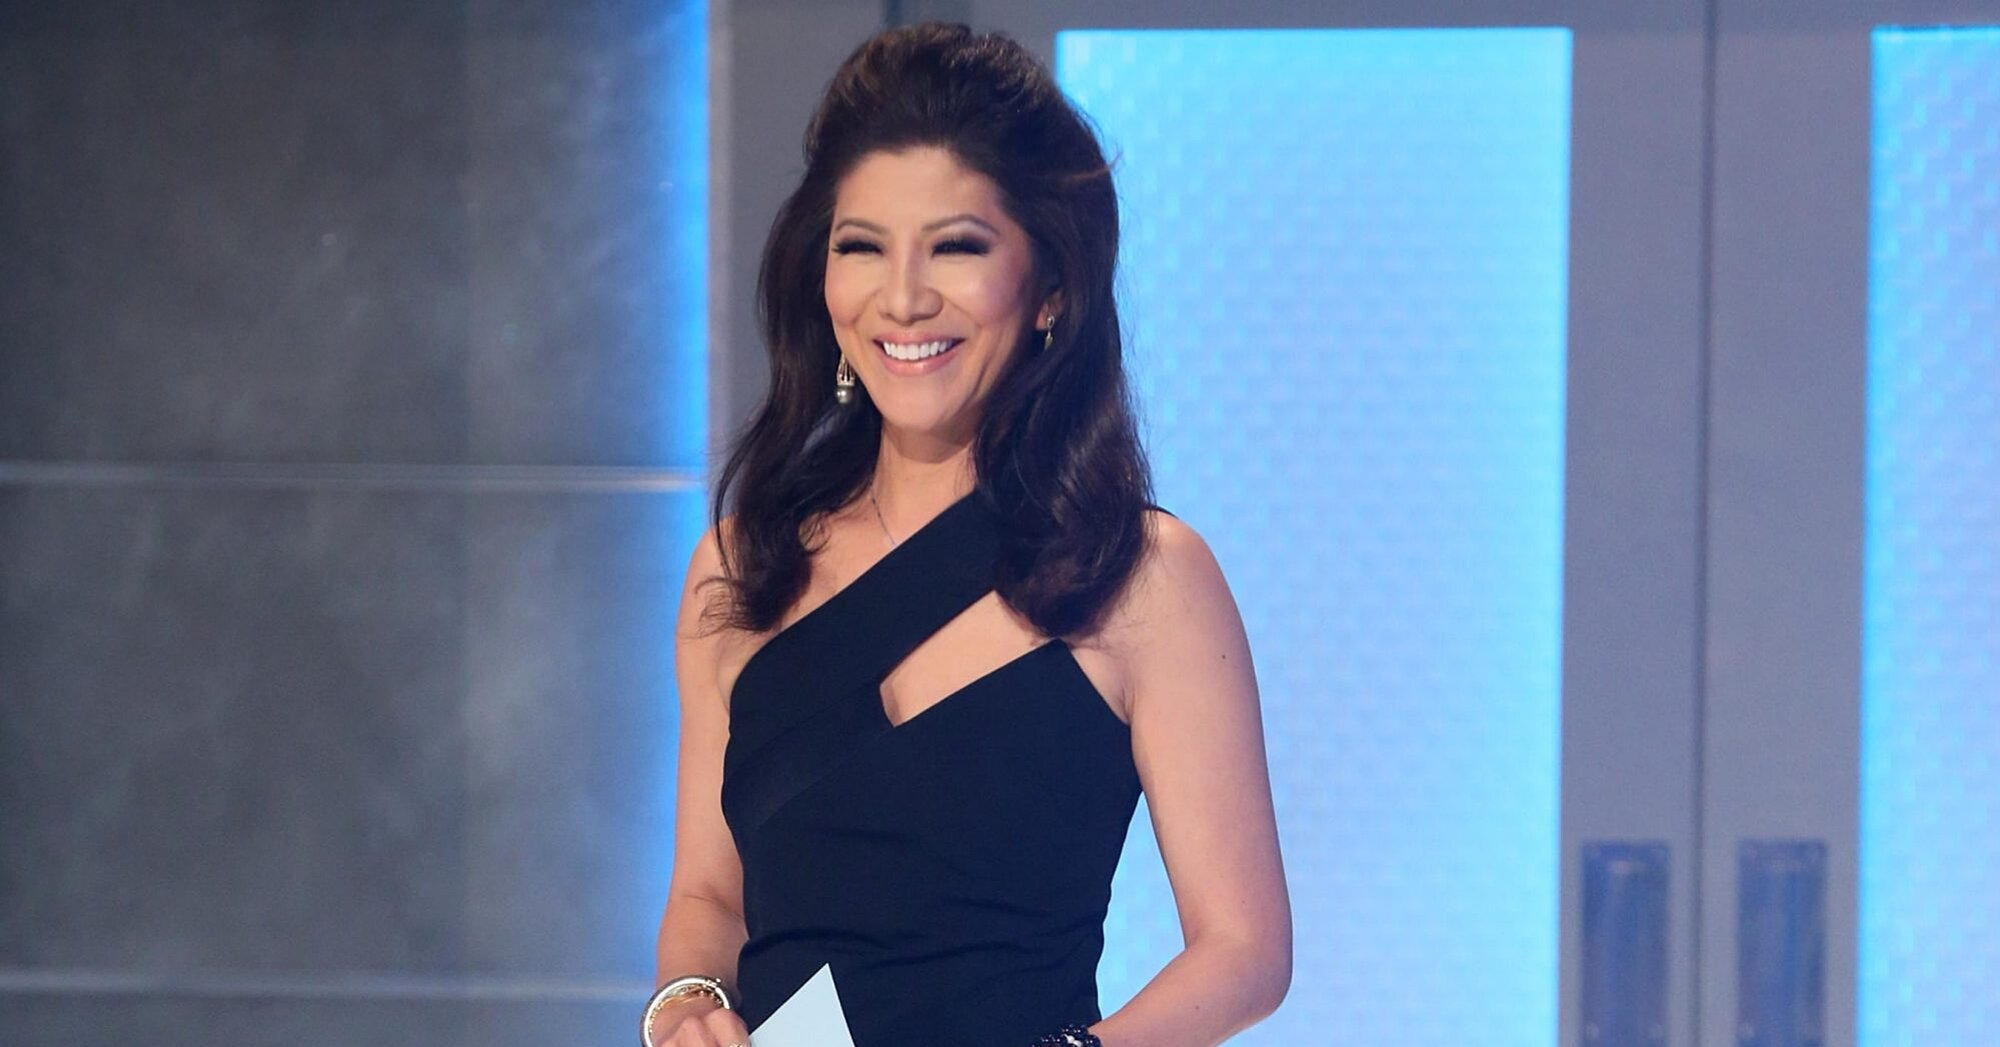 Julie Chen weighs in on if Cody made the right call on 'Big Brother' - Entertainment Weekly